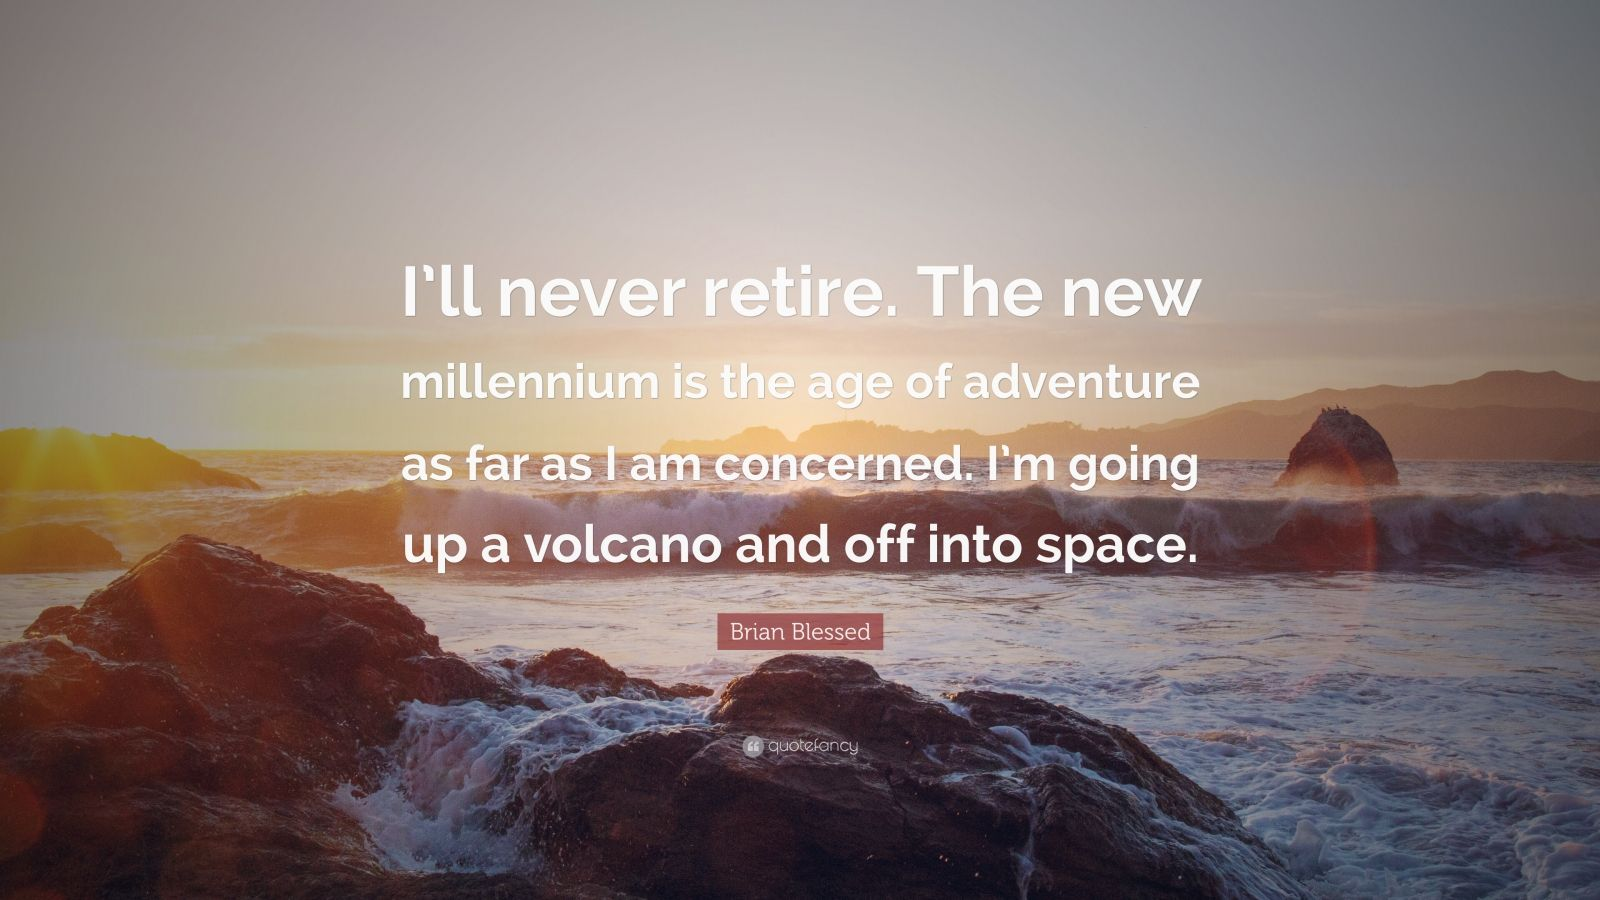 """Brian Blessed Quote: """"I'll never retire. The new millennium is the age of adventure as far as I am concerned. I'm going up a volcano and off into space."""""""